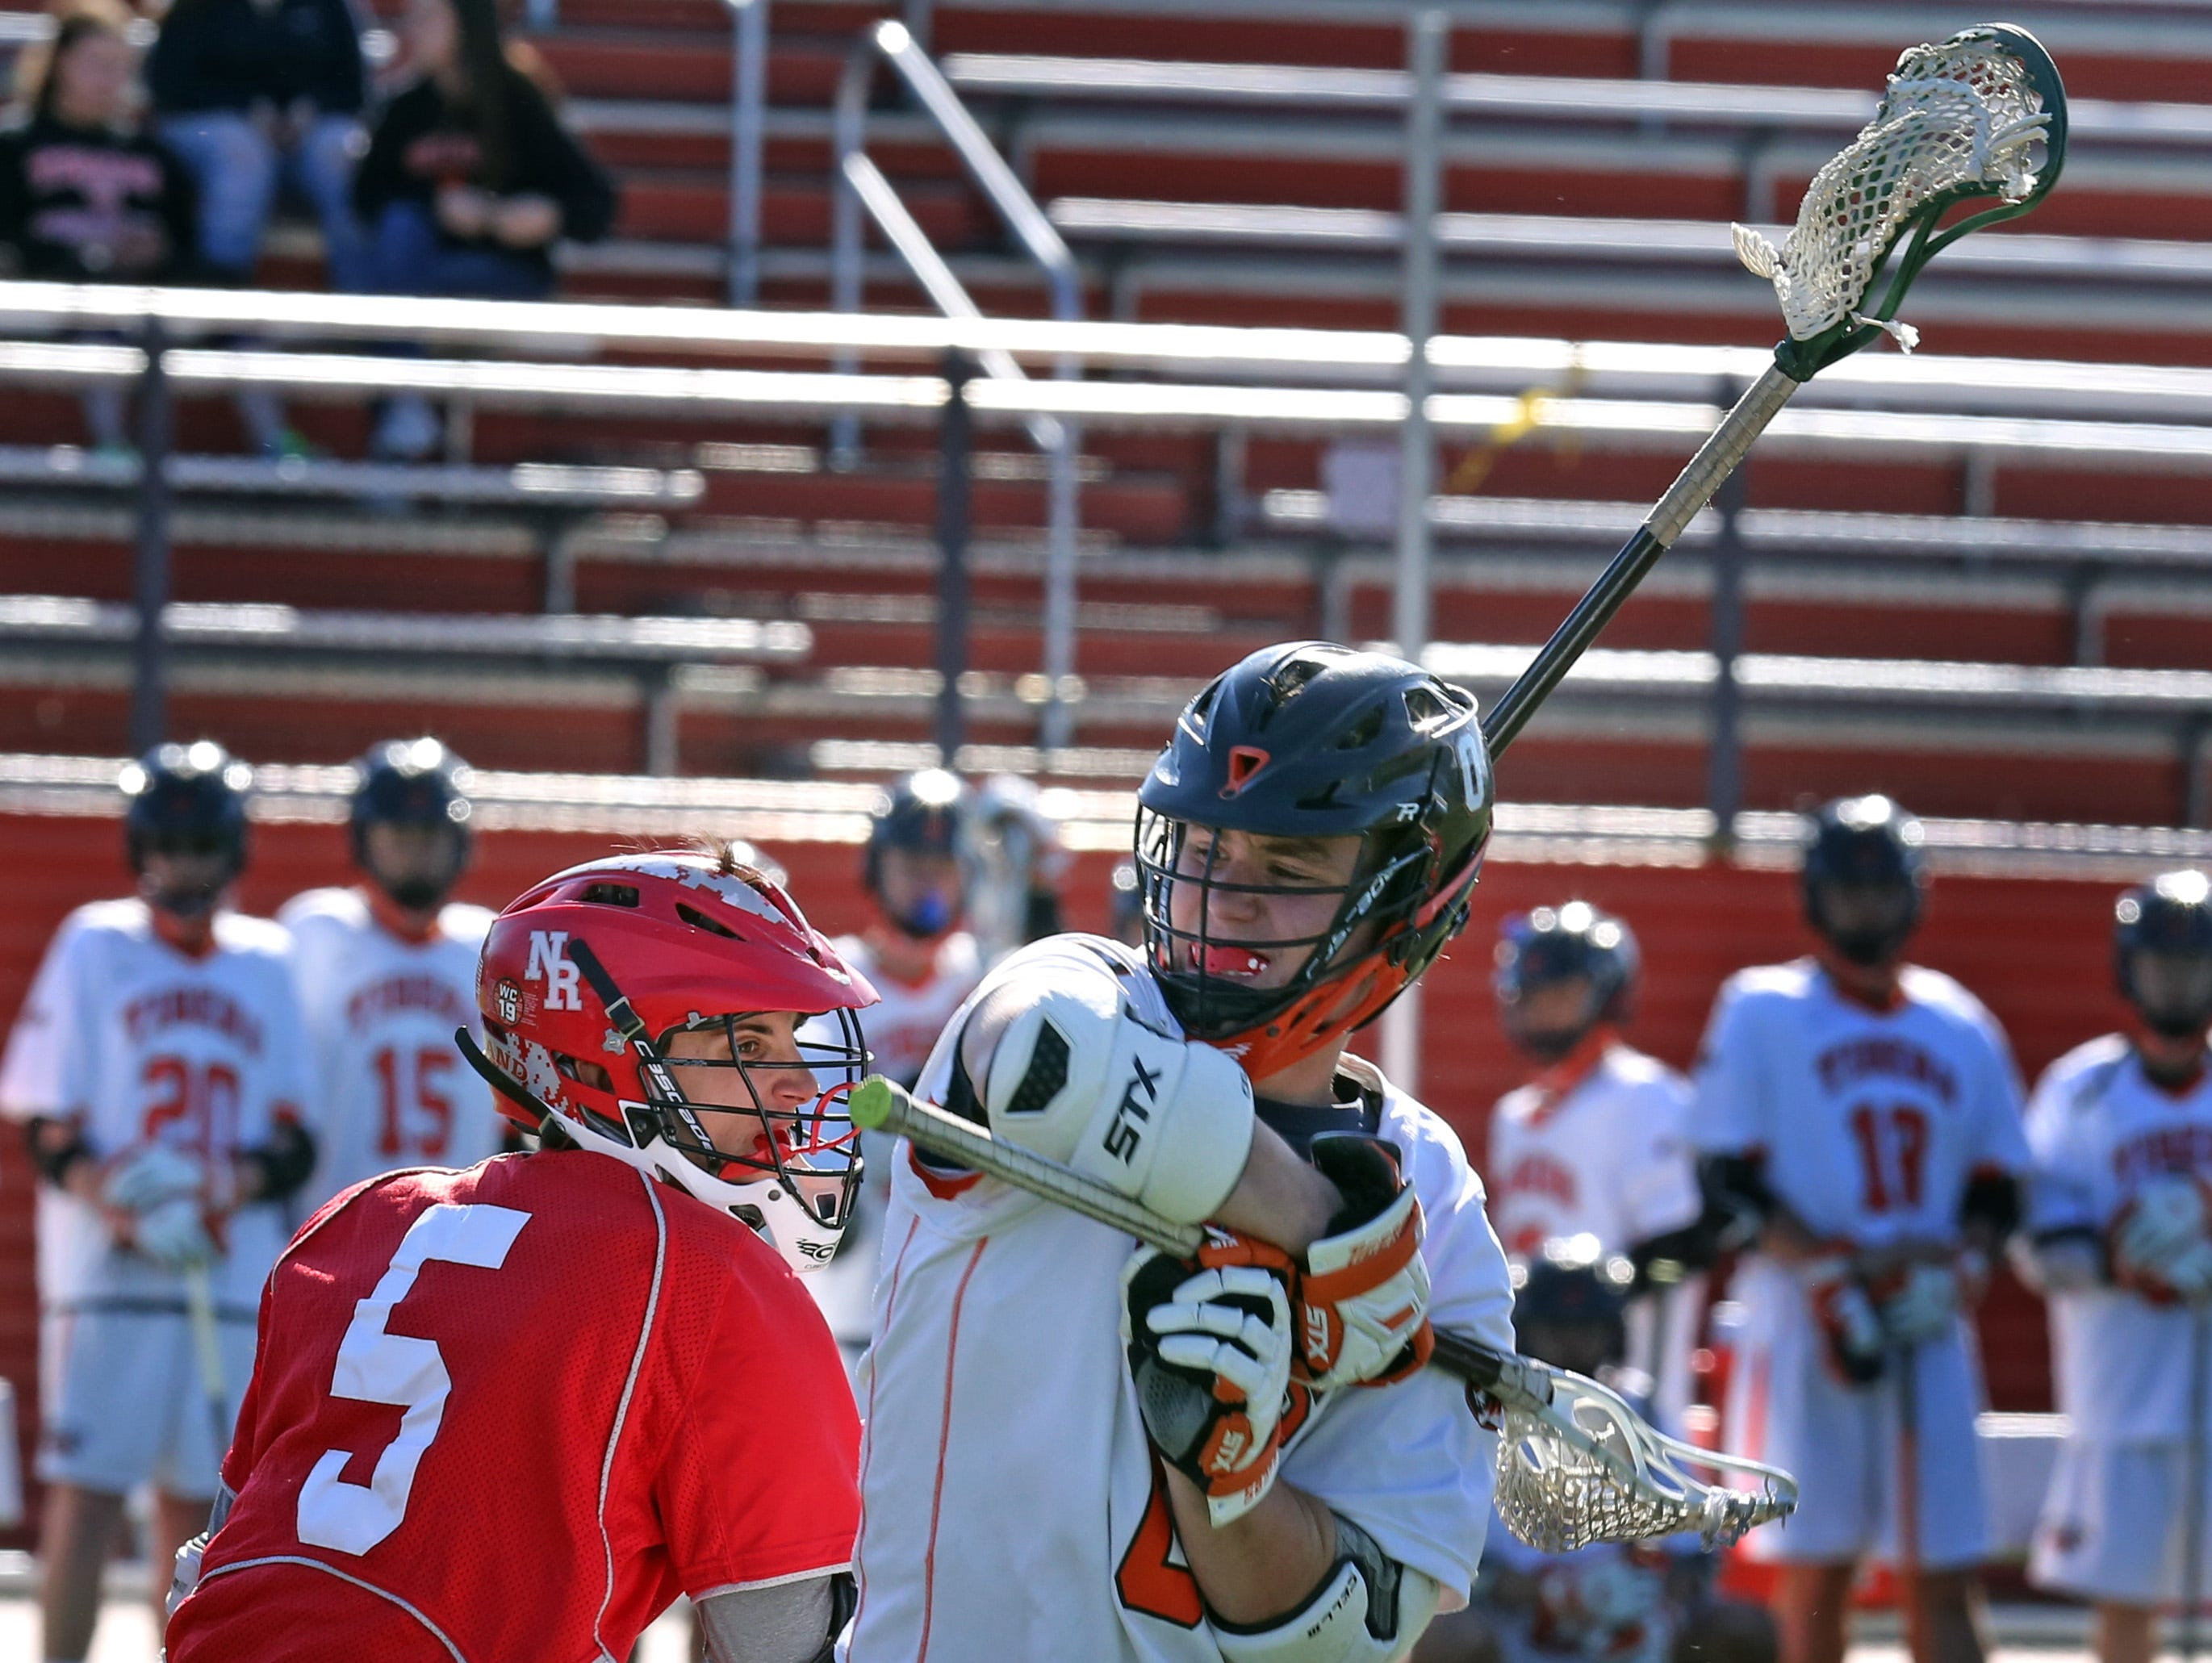 North Rockland's James Morina (5) guards White Plains Brendan Johnson (0) during boys lacrosse Section 1 Class A opening-round game at White Plains High School on May 16, 2016. White Plains defeats North Rockland 13-12.